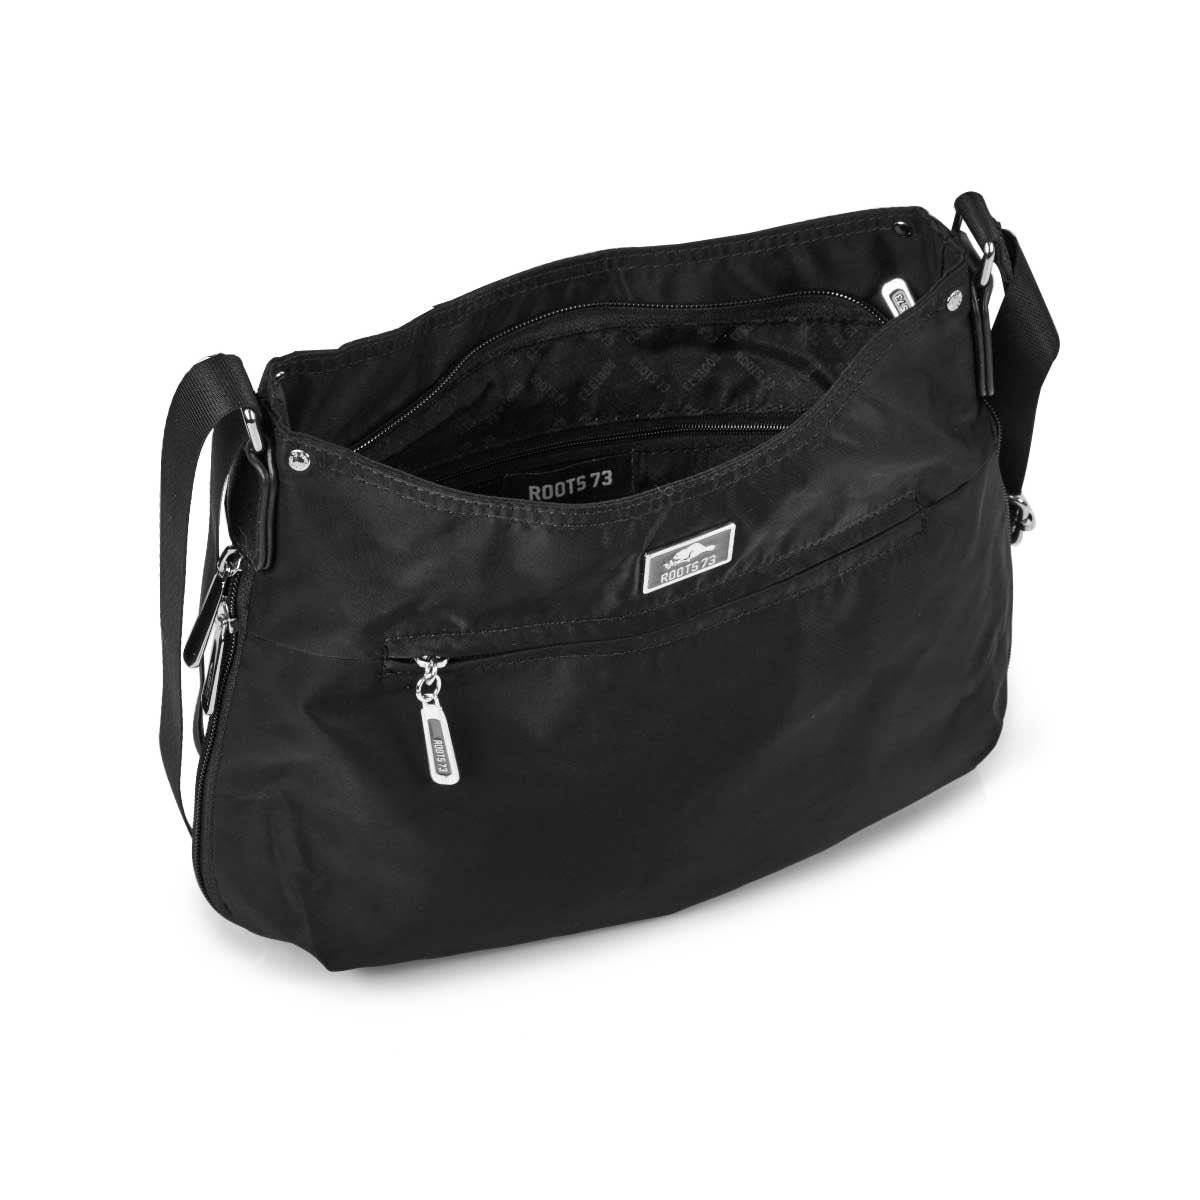 Lds Roots73 blk top zip crossbody bag